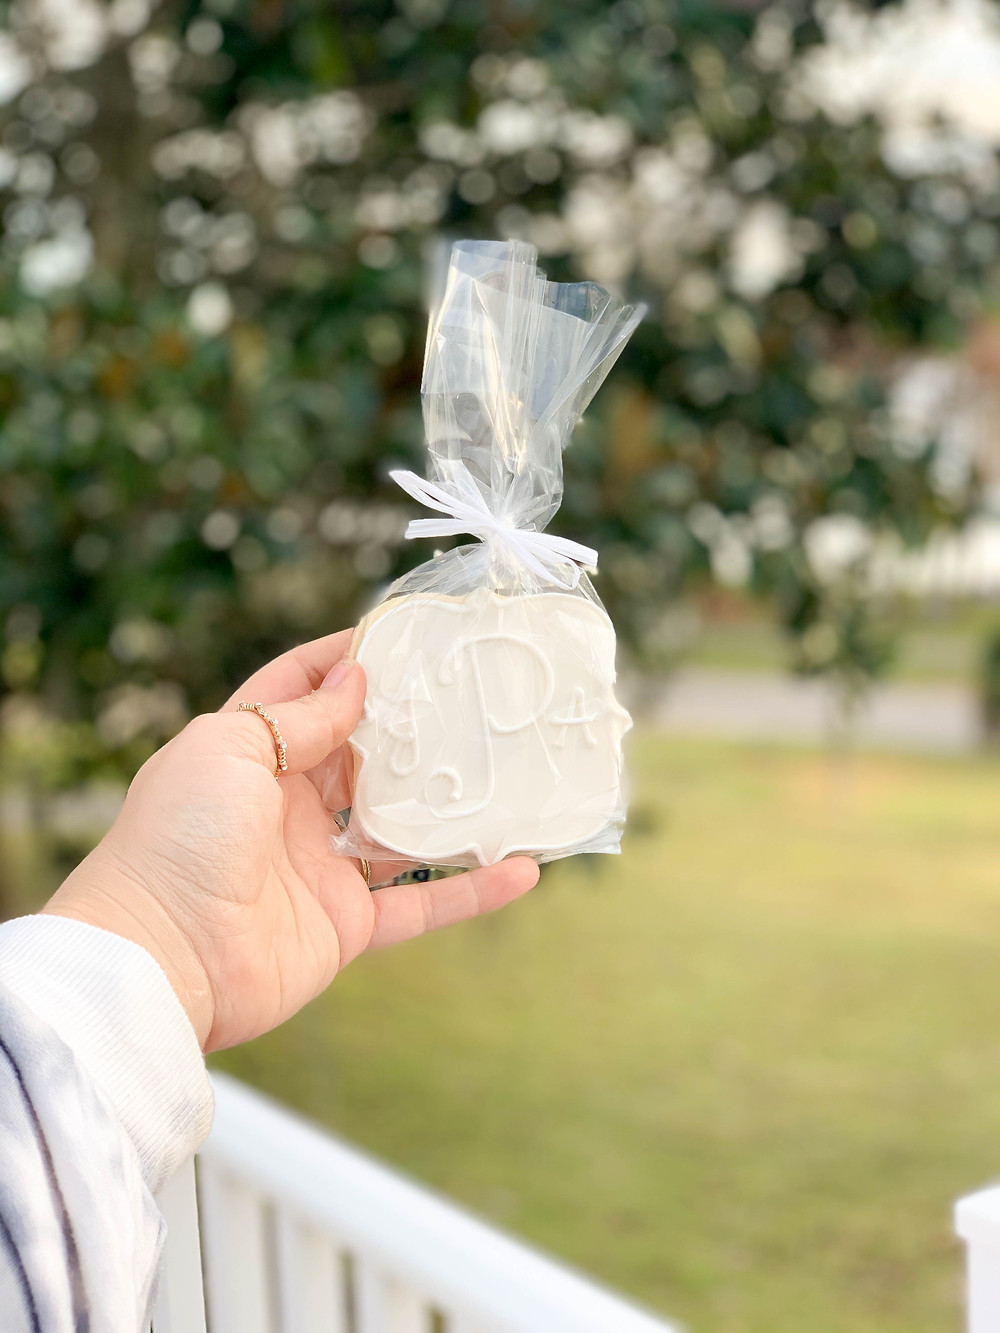 how to have a safe covid wedding